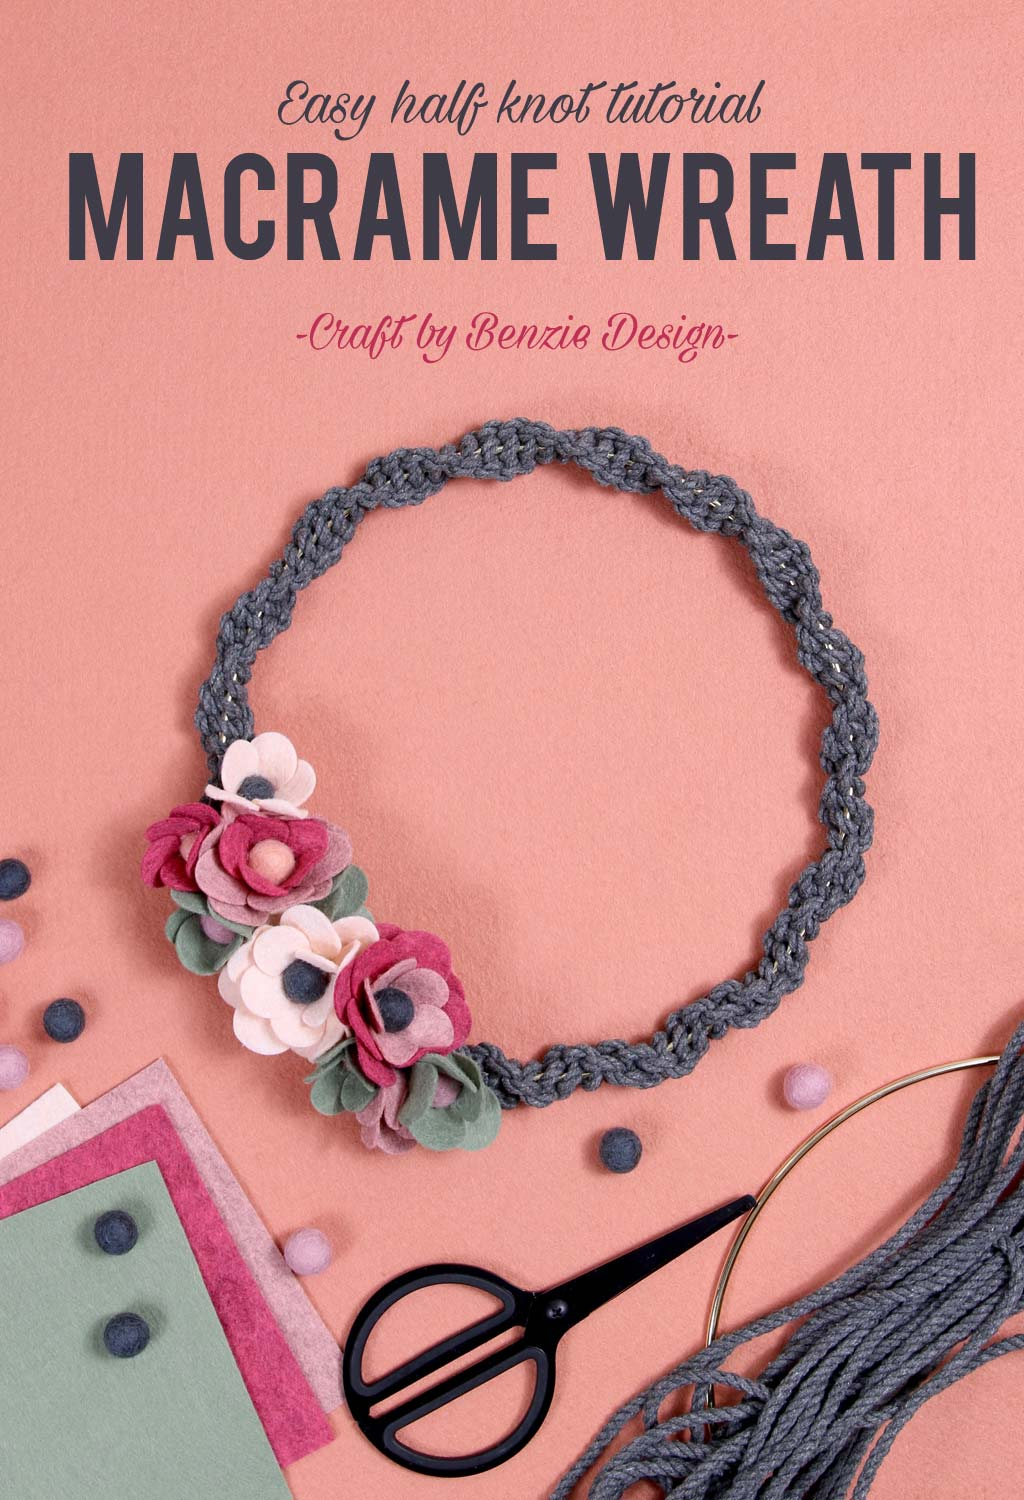 How to make a macrame wreath